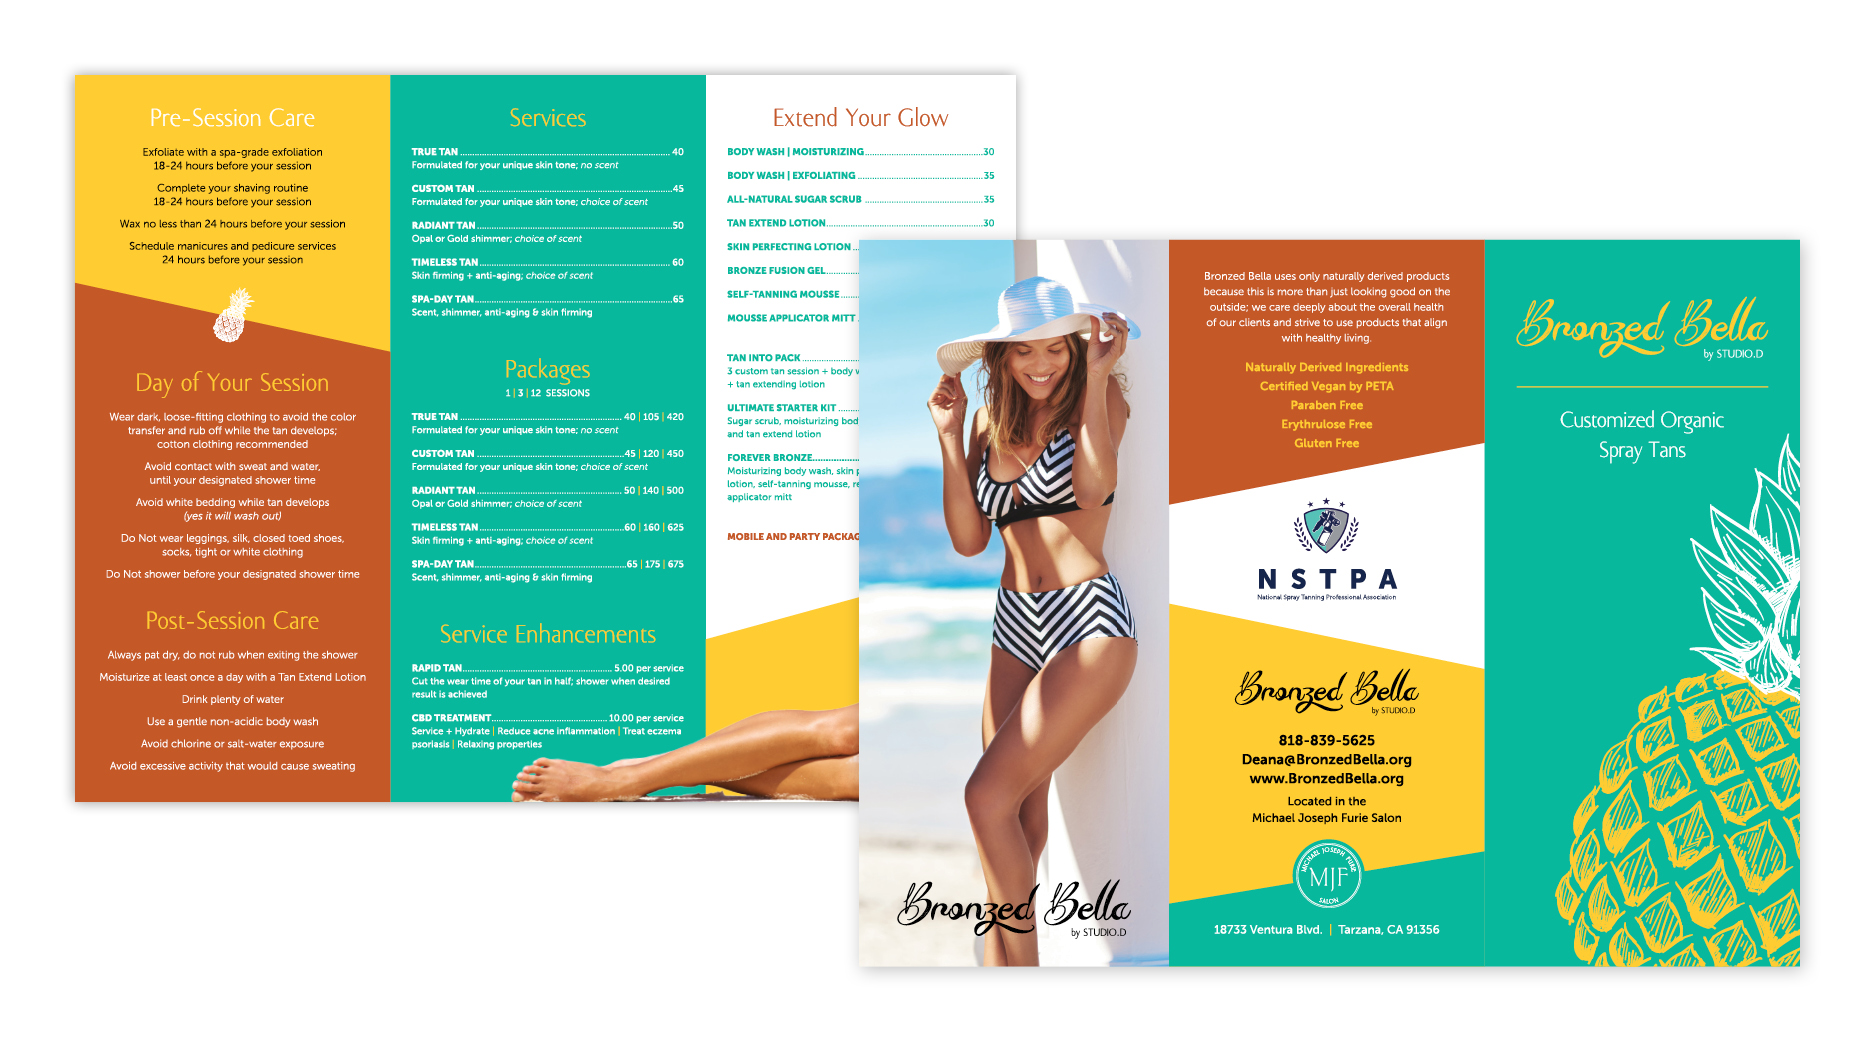 Bronzed Bella | Services Brochure